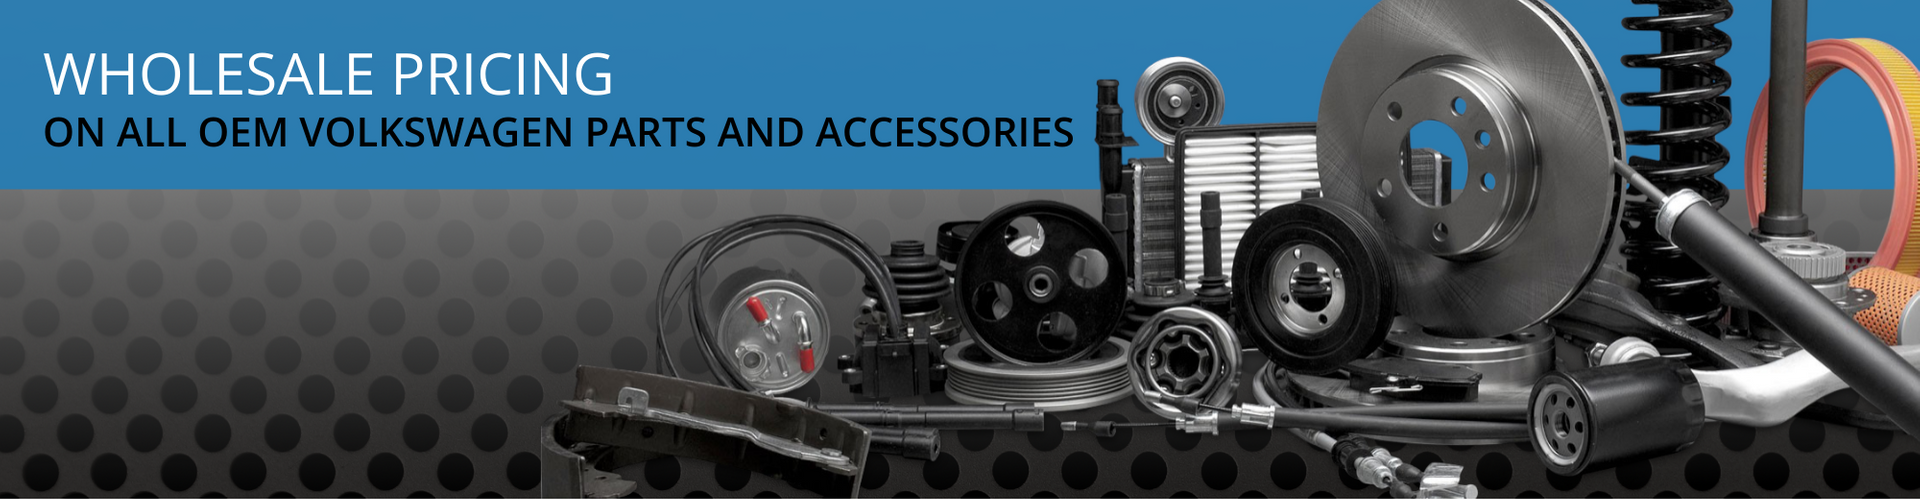 Shop Volkswagen Parts and Accessories